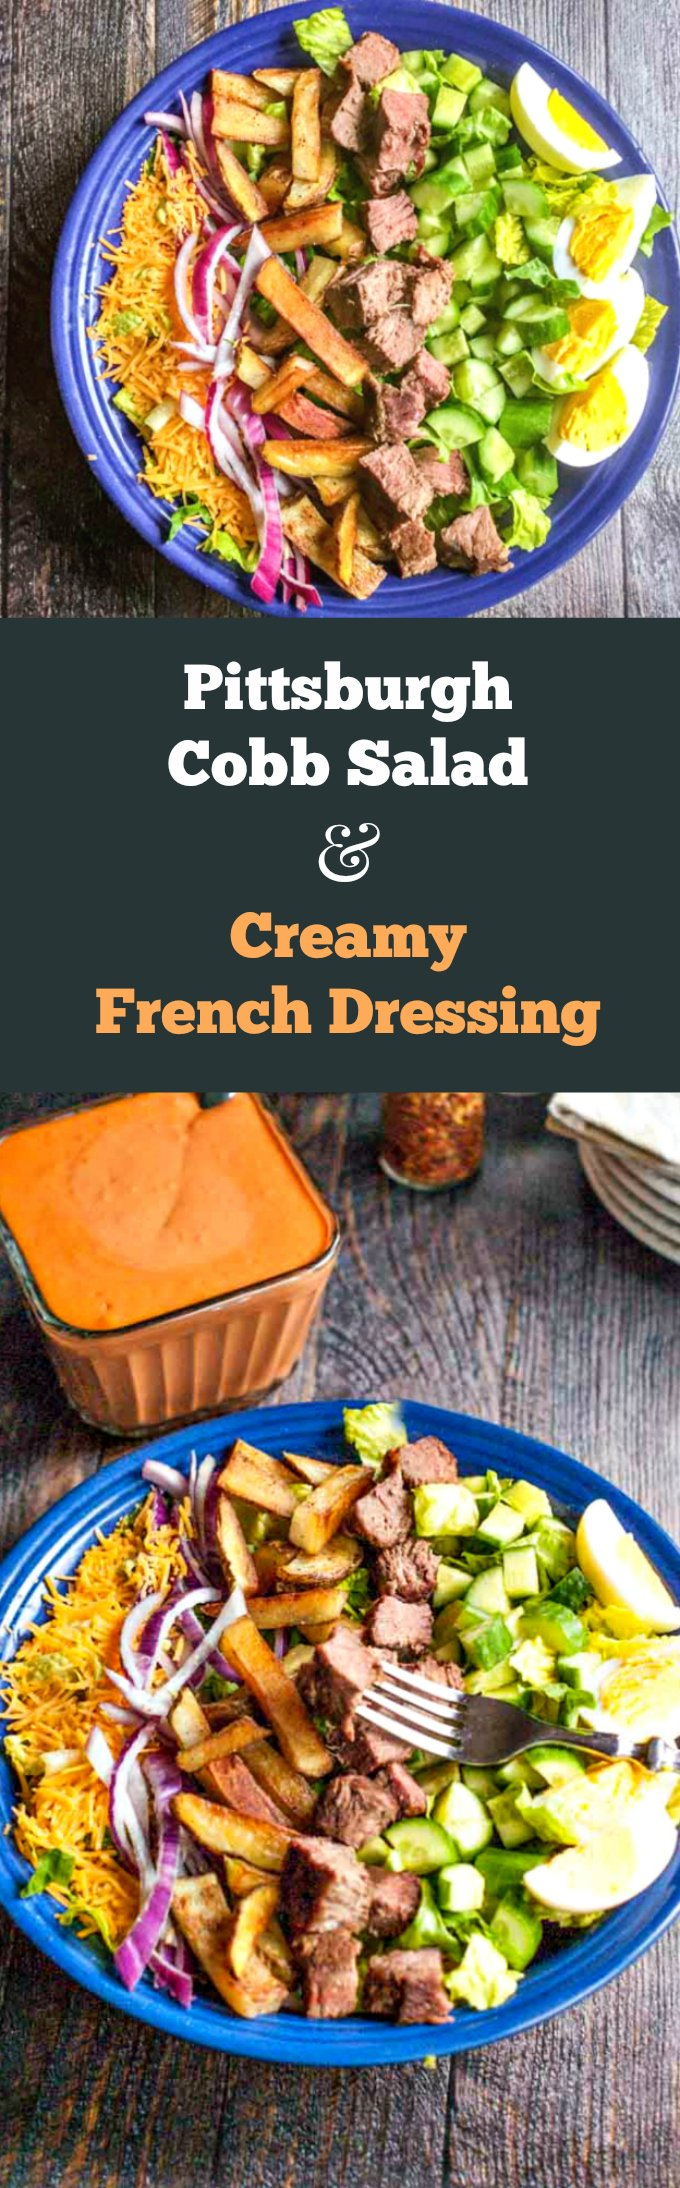 A Pittsburgh Cobb Salad goes perfectly with homemade, cream French dressing. Steak and home fries for dinner becomes a tasty salad for lunch the next day.